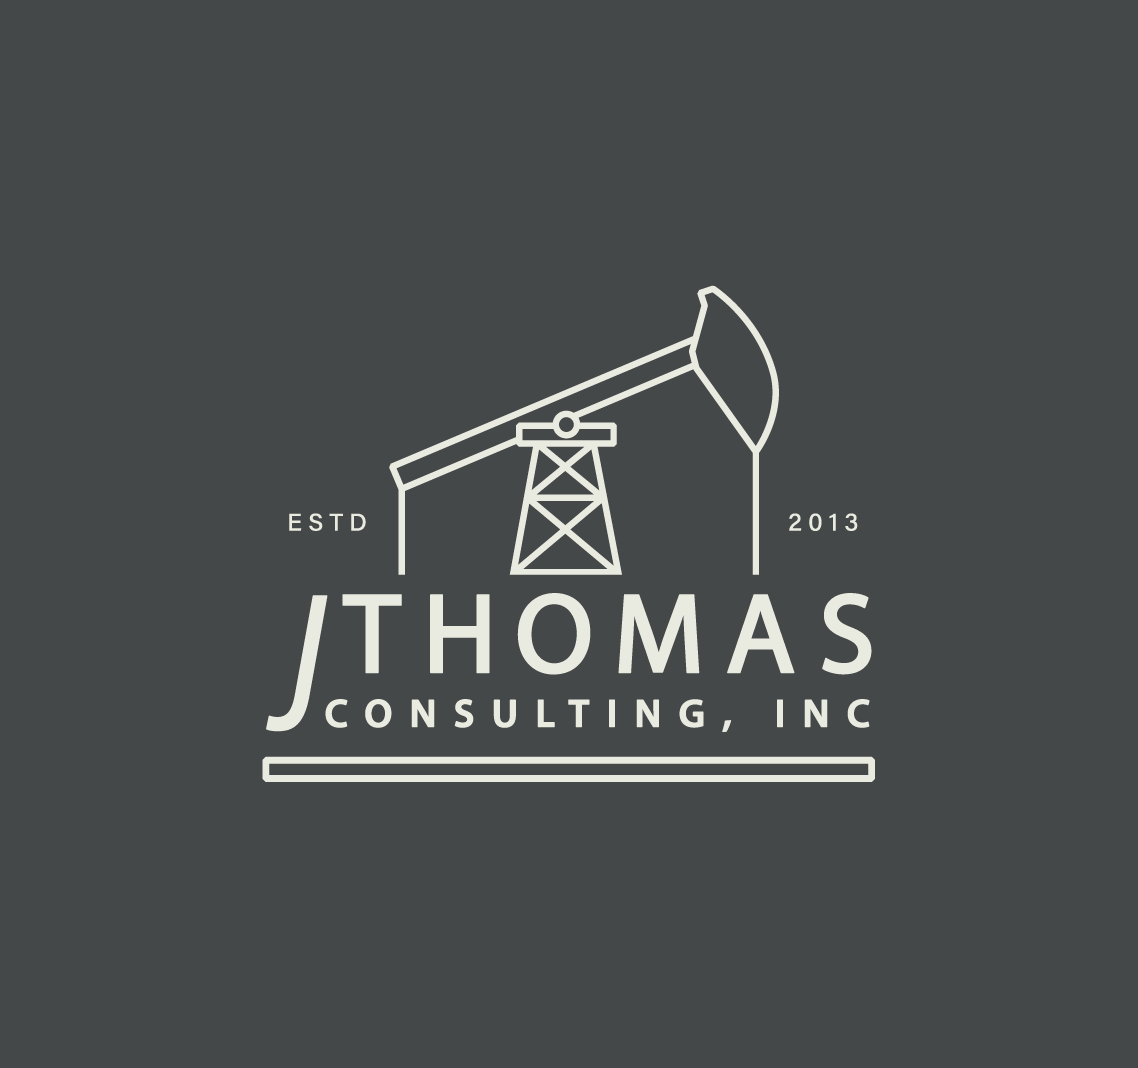 J Thomas Consulting, INC | Logo Design